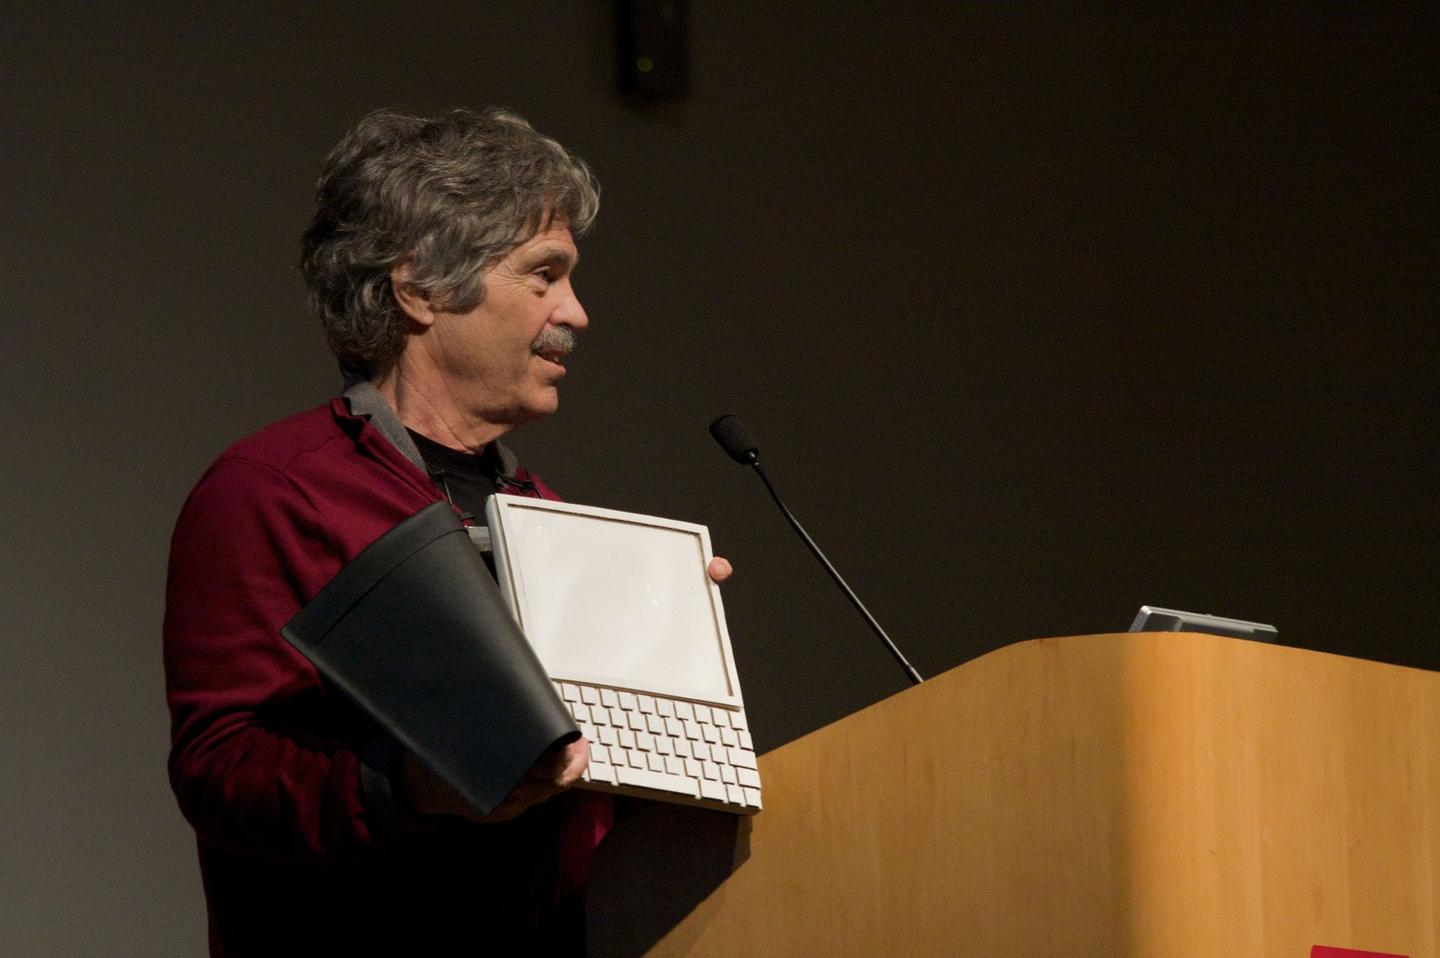 Dr. Alan Kay showcasing a Dynabook prototype